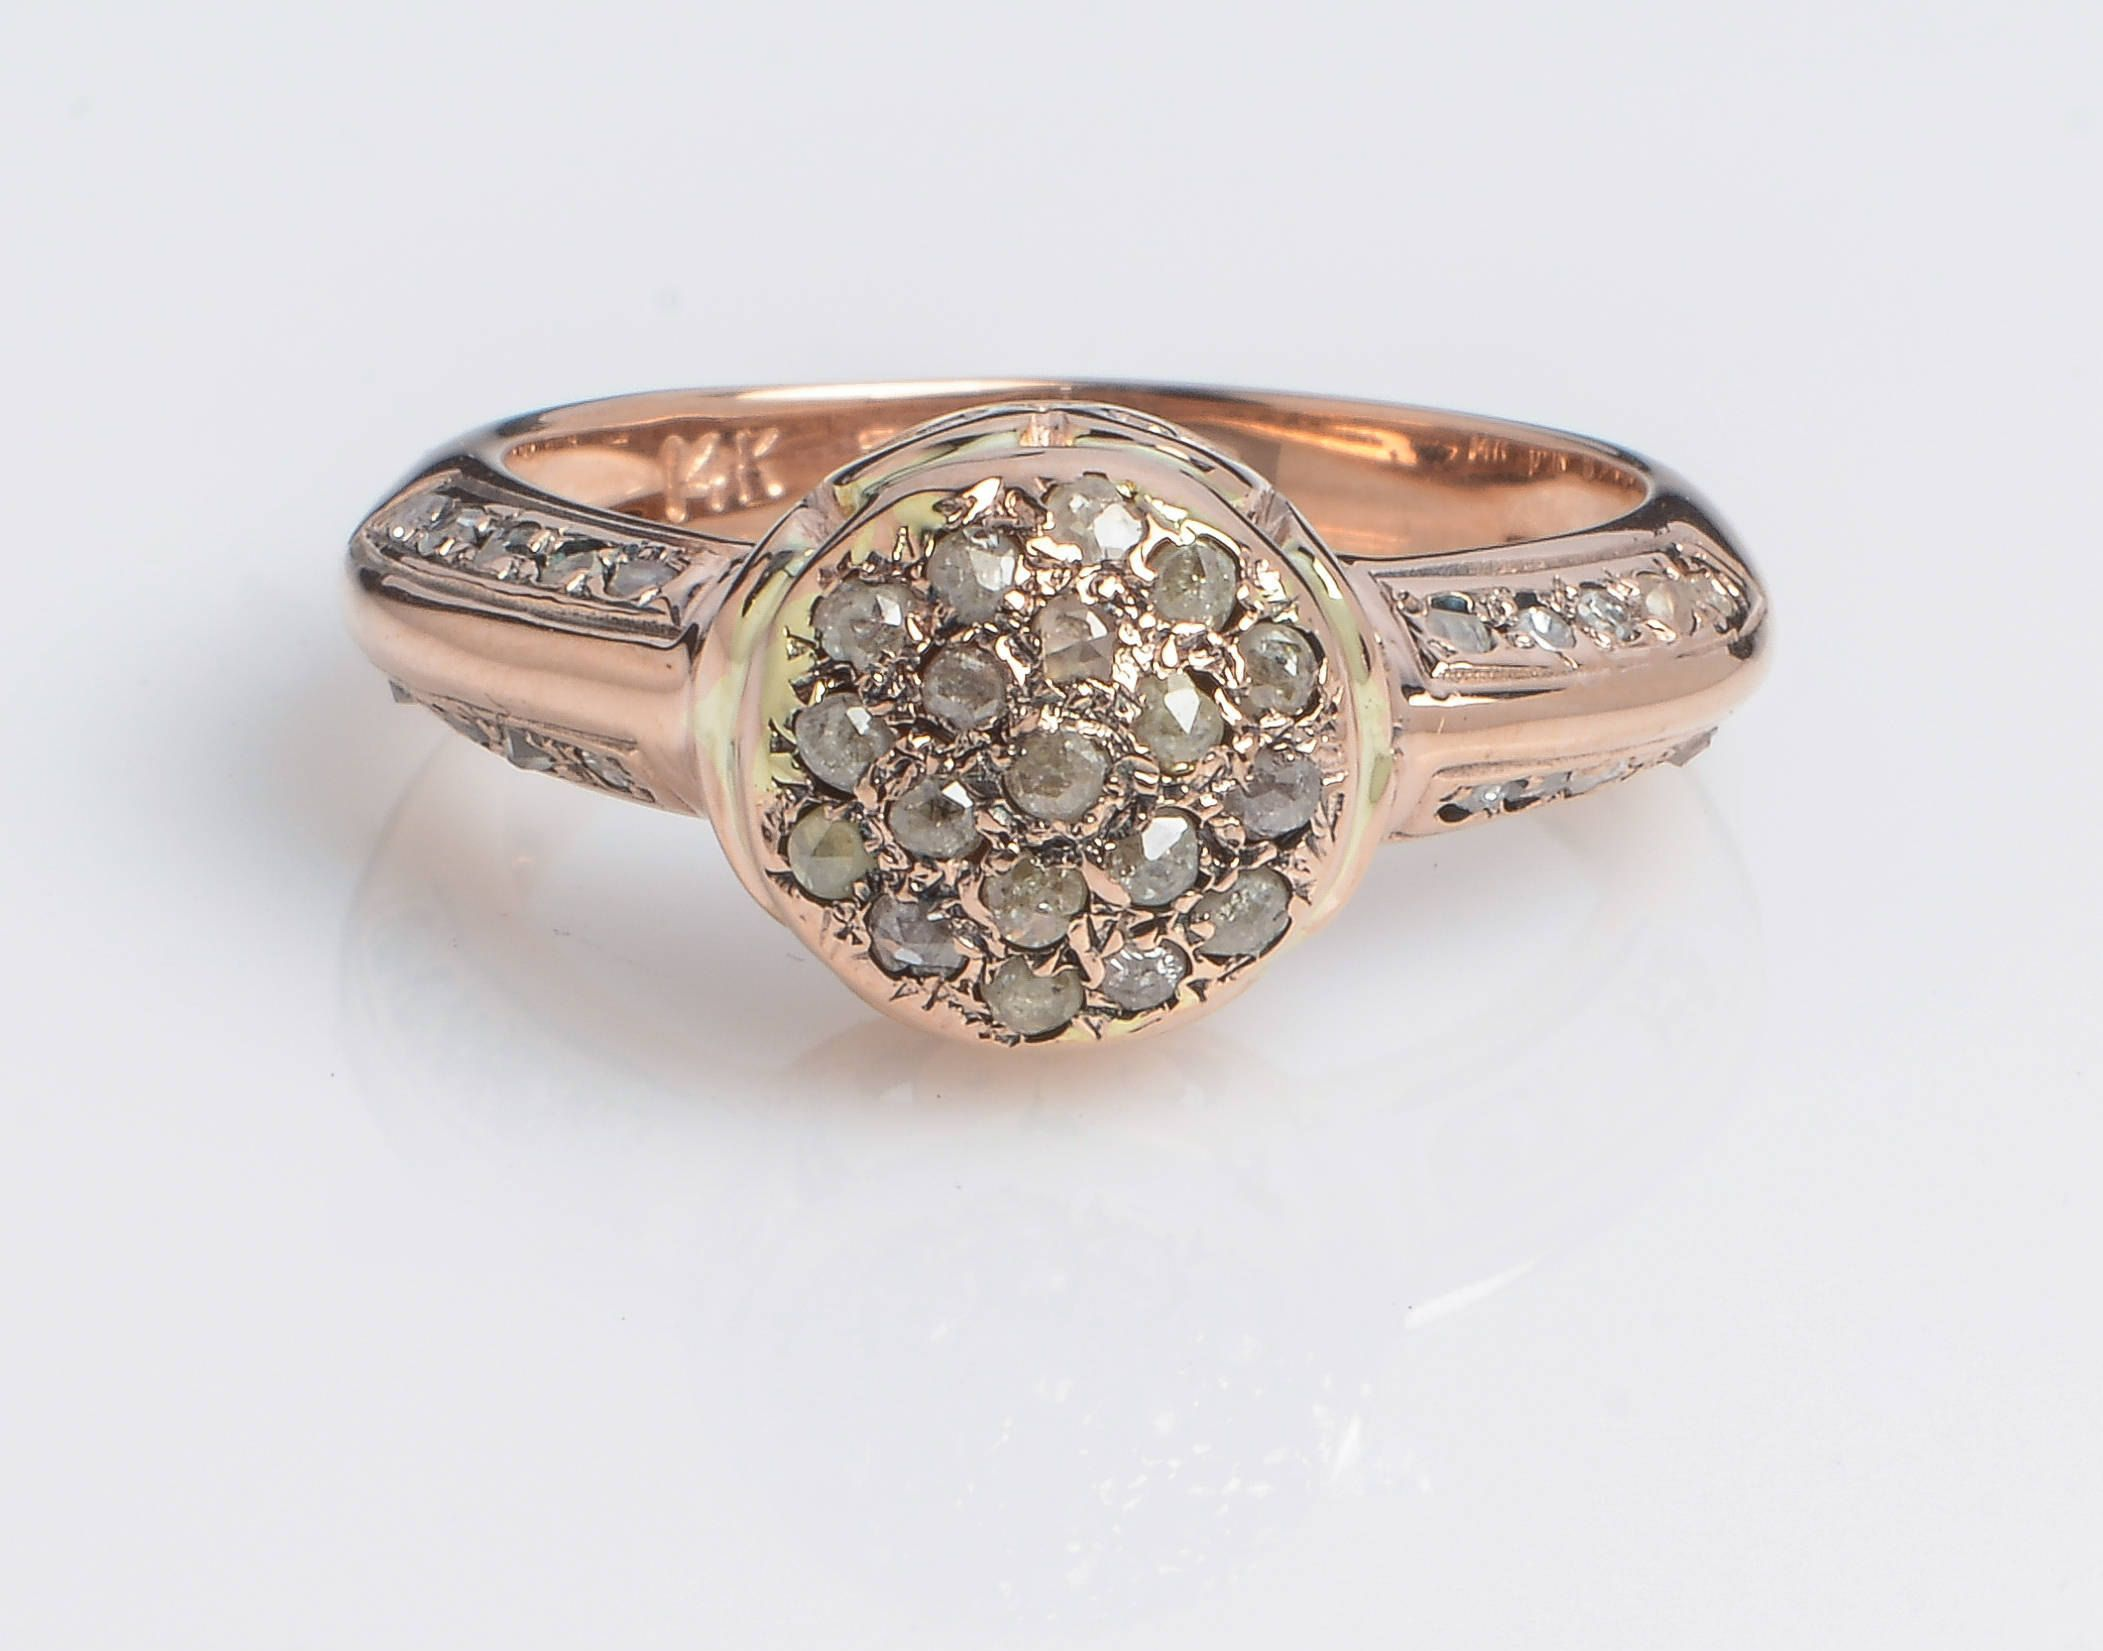 Napoleon style Rose Cut Diamond Vintage Ring in 14K Rose Gold by